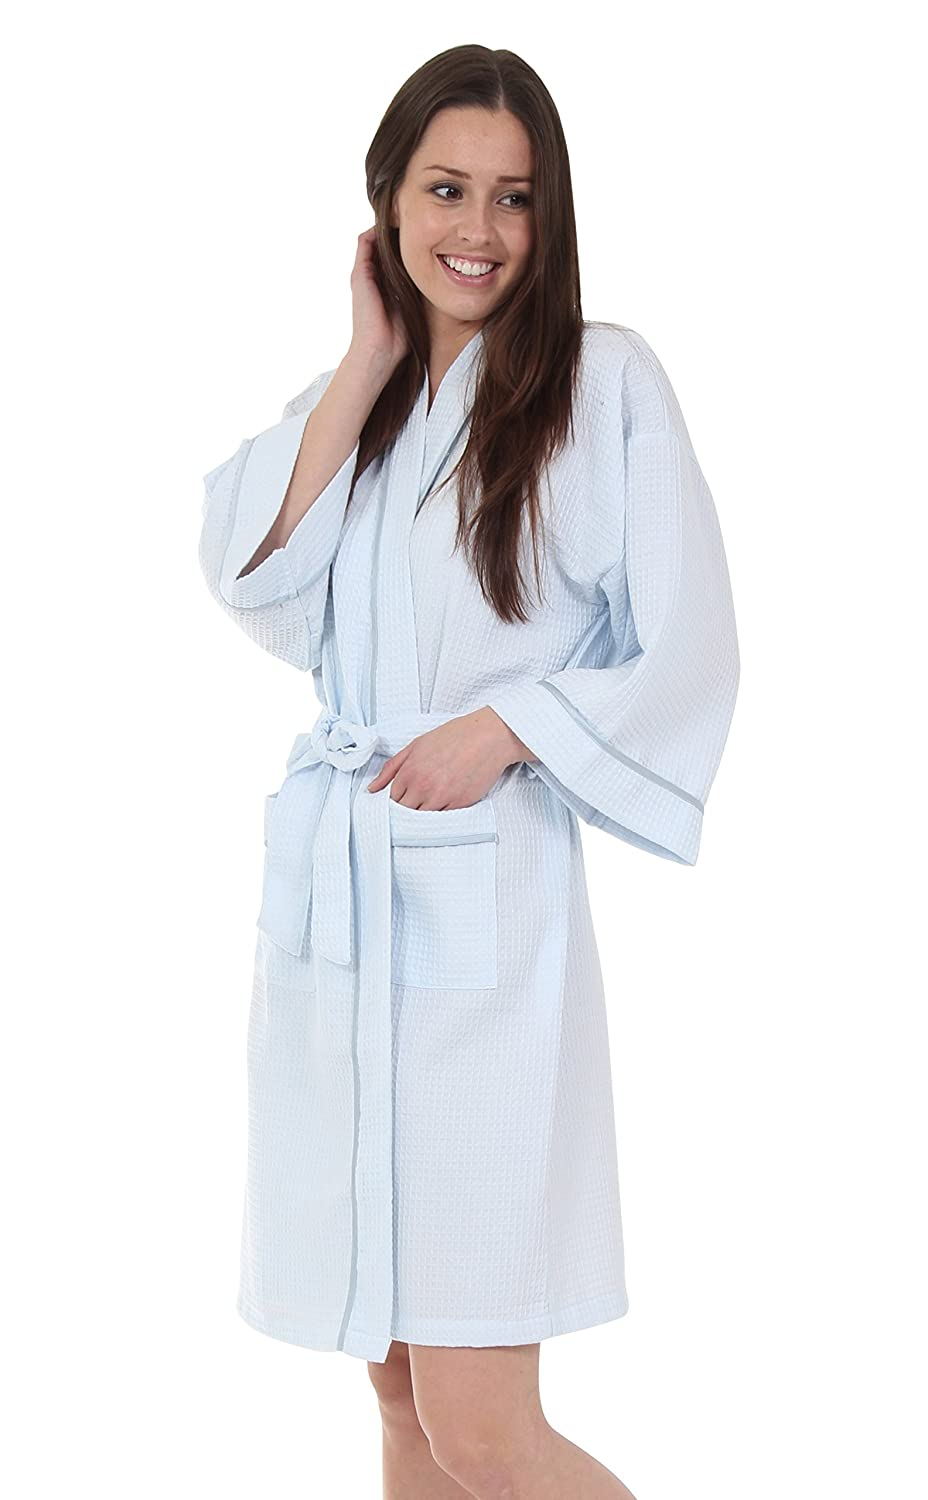 Luxury Spa Bathrobe Dressing Gown in Soft Waffle Fabric with Satin Trim in White, Soft Pink and Light Blue